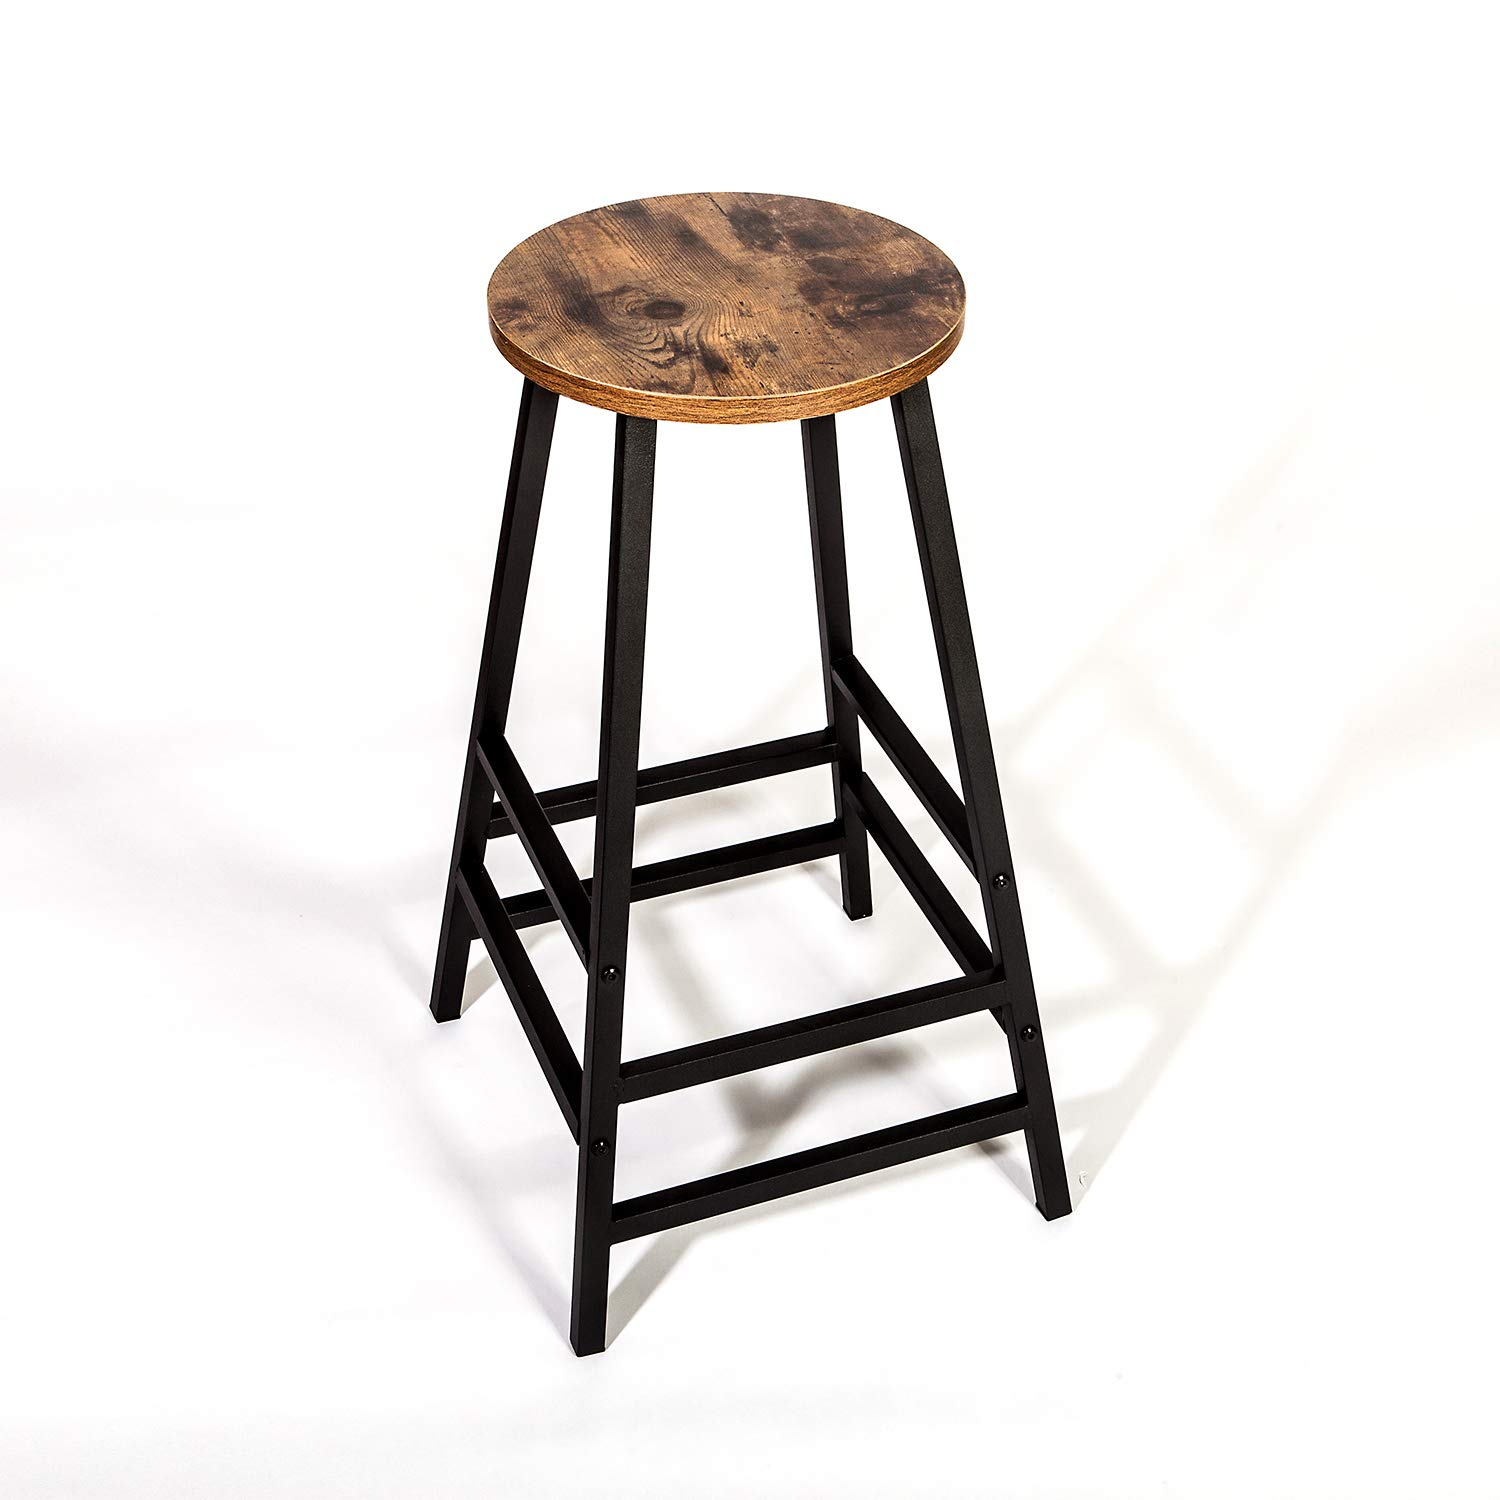 IRONCK RONCK Industrial 28.5'' Pub Dining Height Bar Stools, Bistro Bar Table and Chairs Sets,Vintage Brown